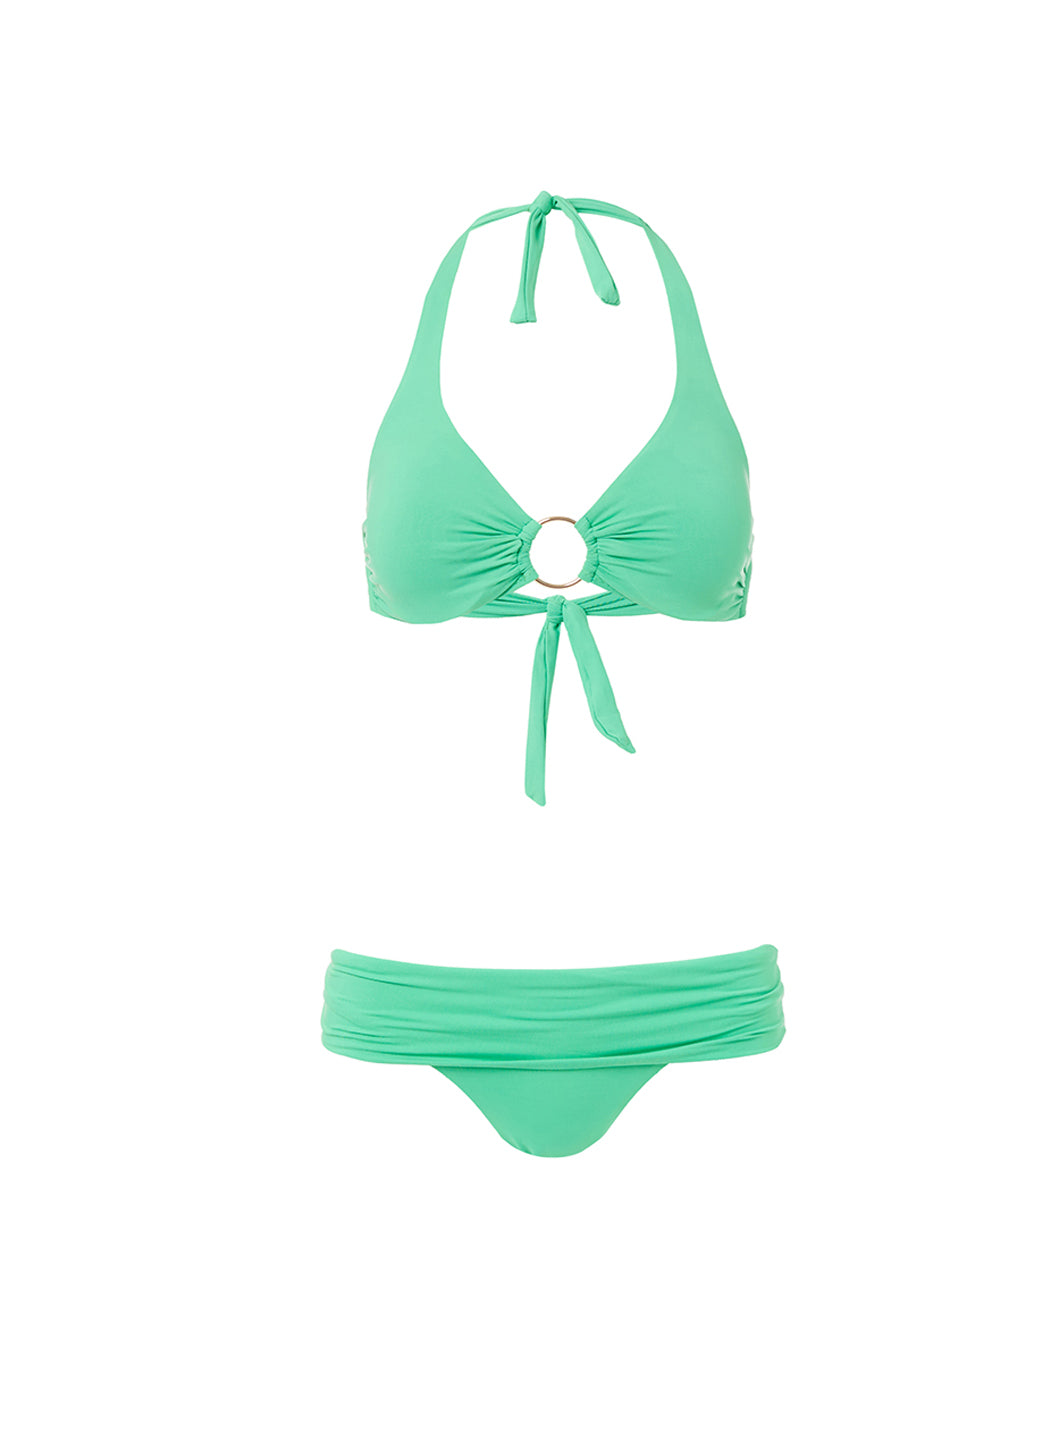 Brussels Green Halterneck Ring Supportive Bikini - Melissa Odabash Swimwear